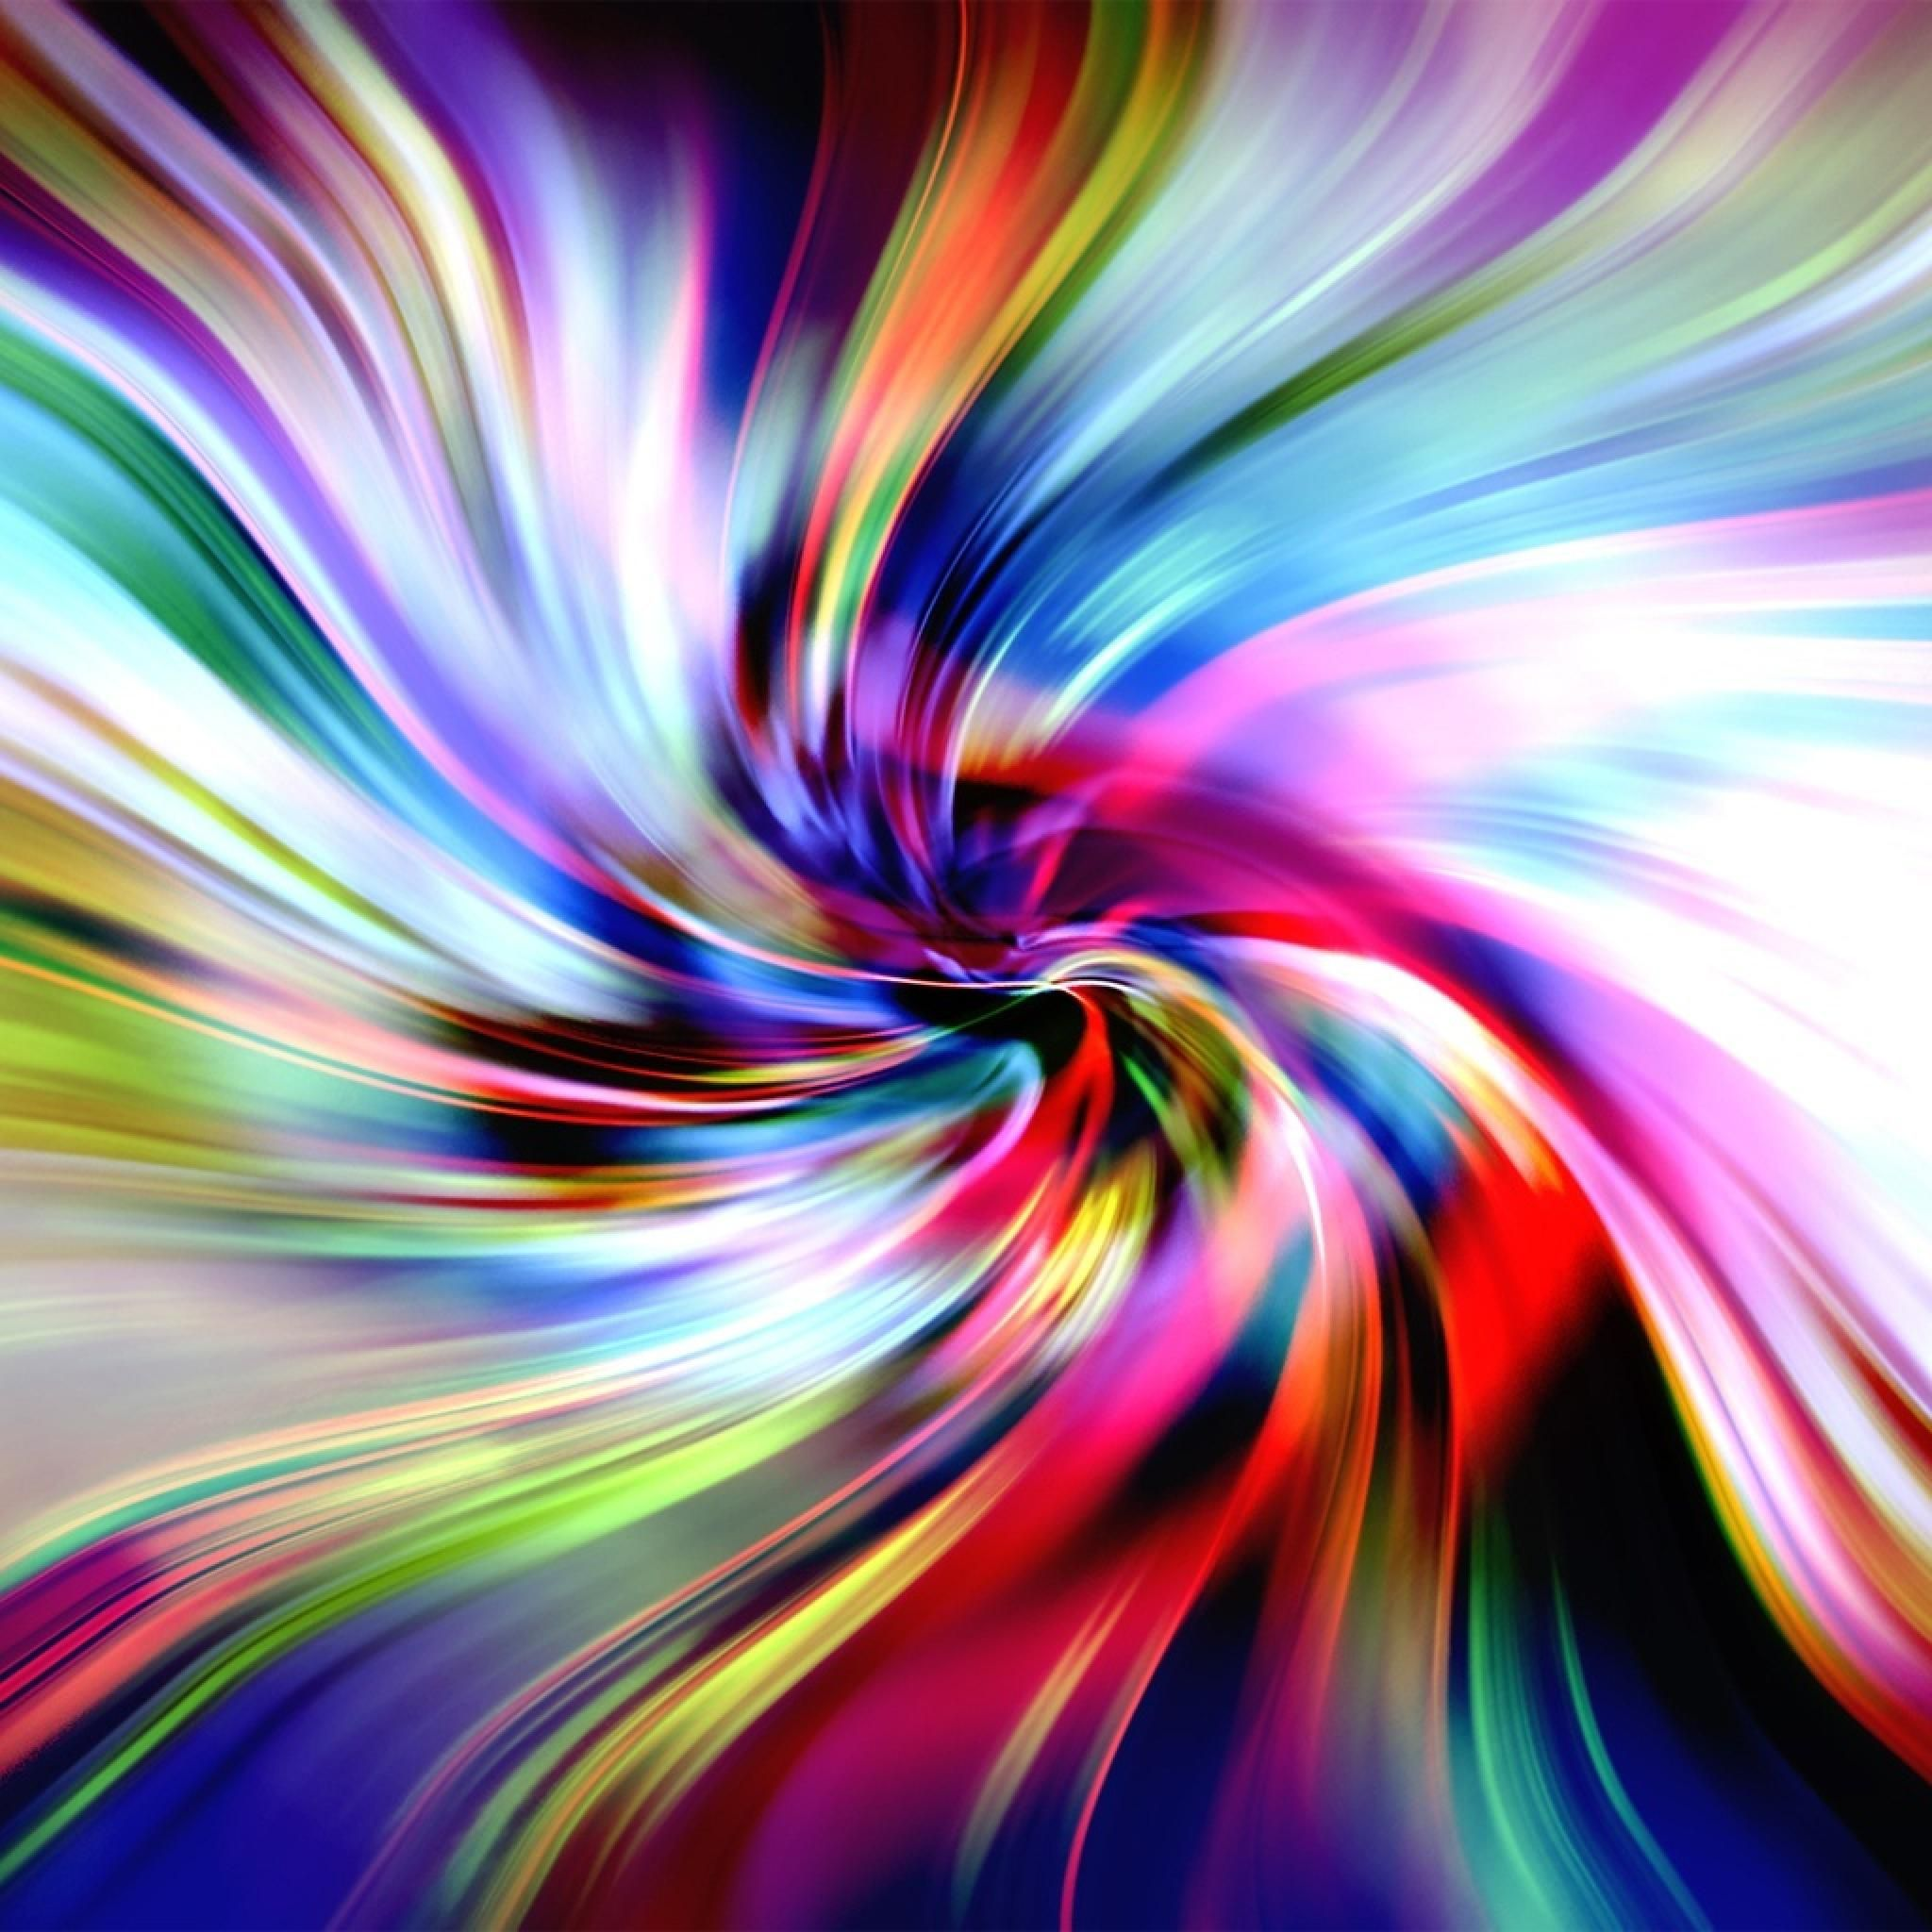 Backgrounds HD Tie Dye Colorful Vortex Swirls Wallpaper